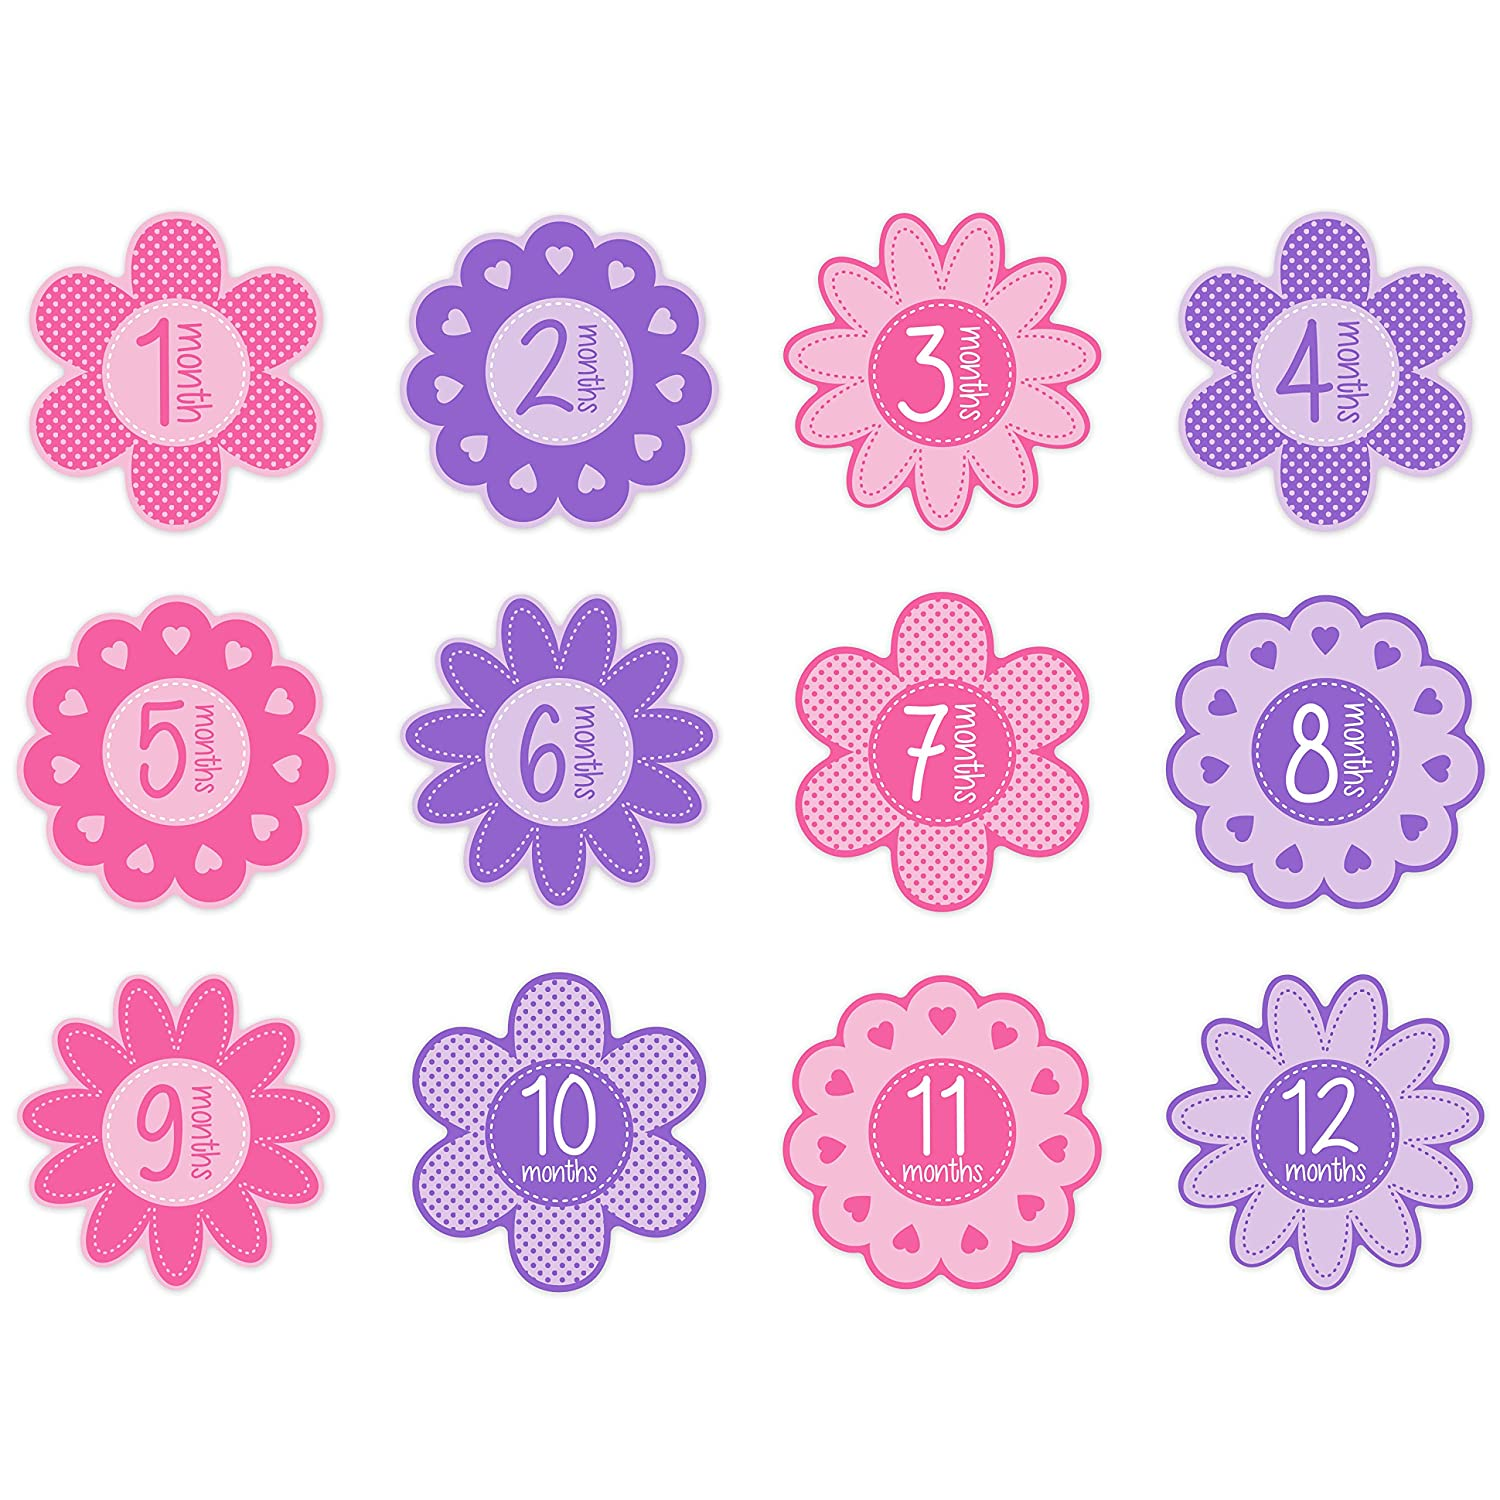 Tiny Ideas First Year Monthly Milestone Flowers Photo Sharing Baby Belly Stickers, 1-12 Months, Pink Pearhead 96190